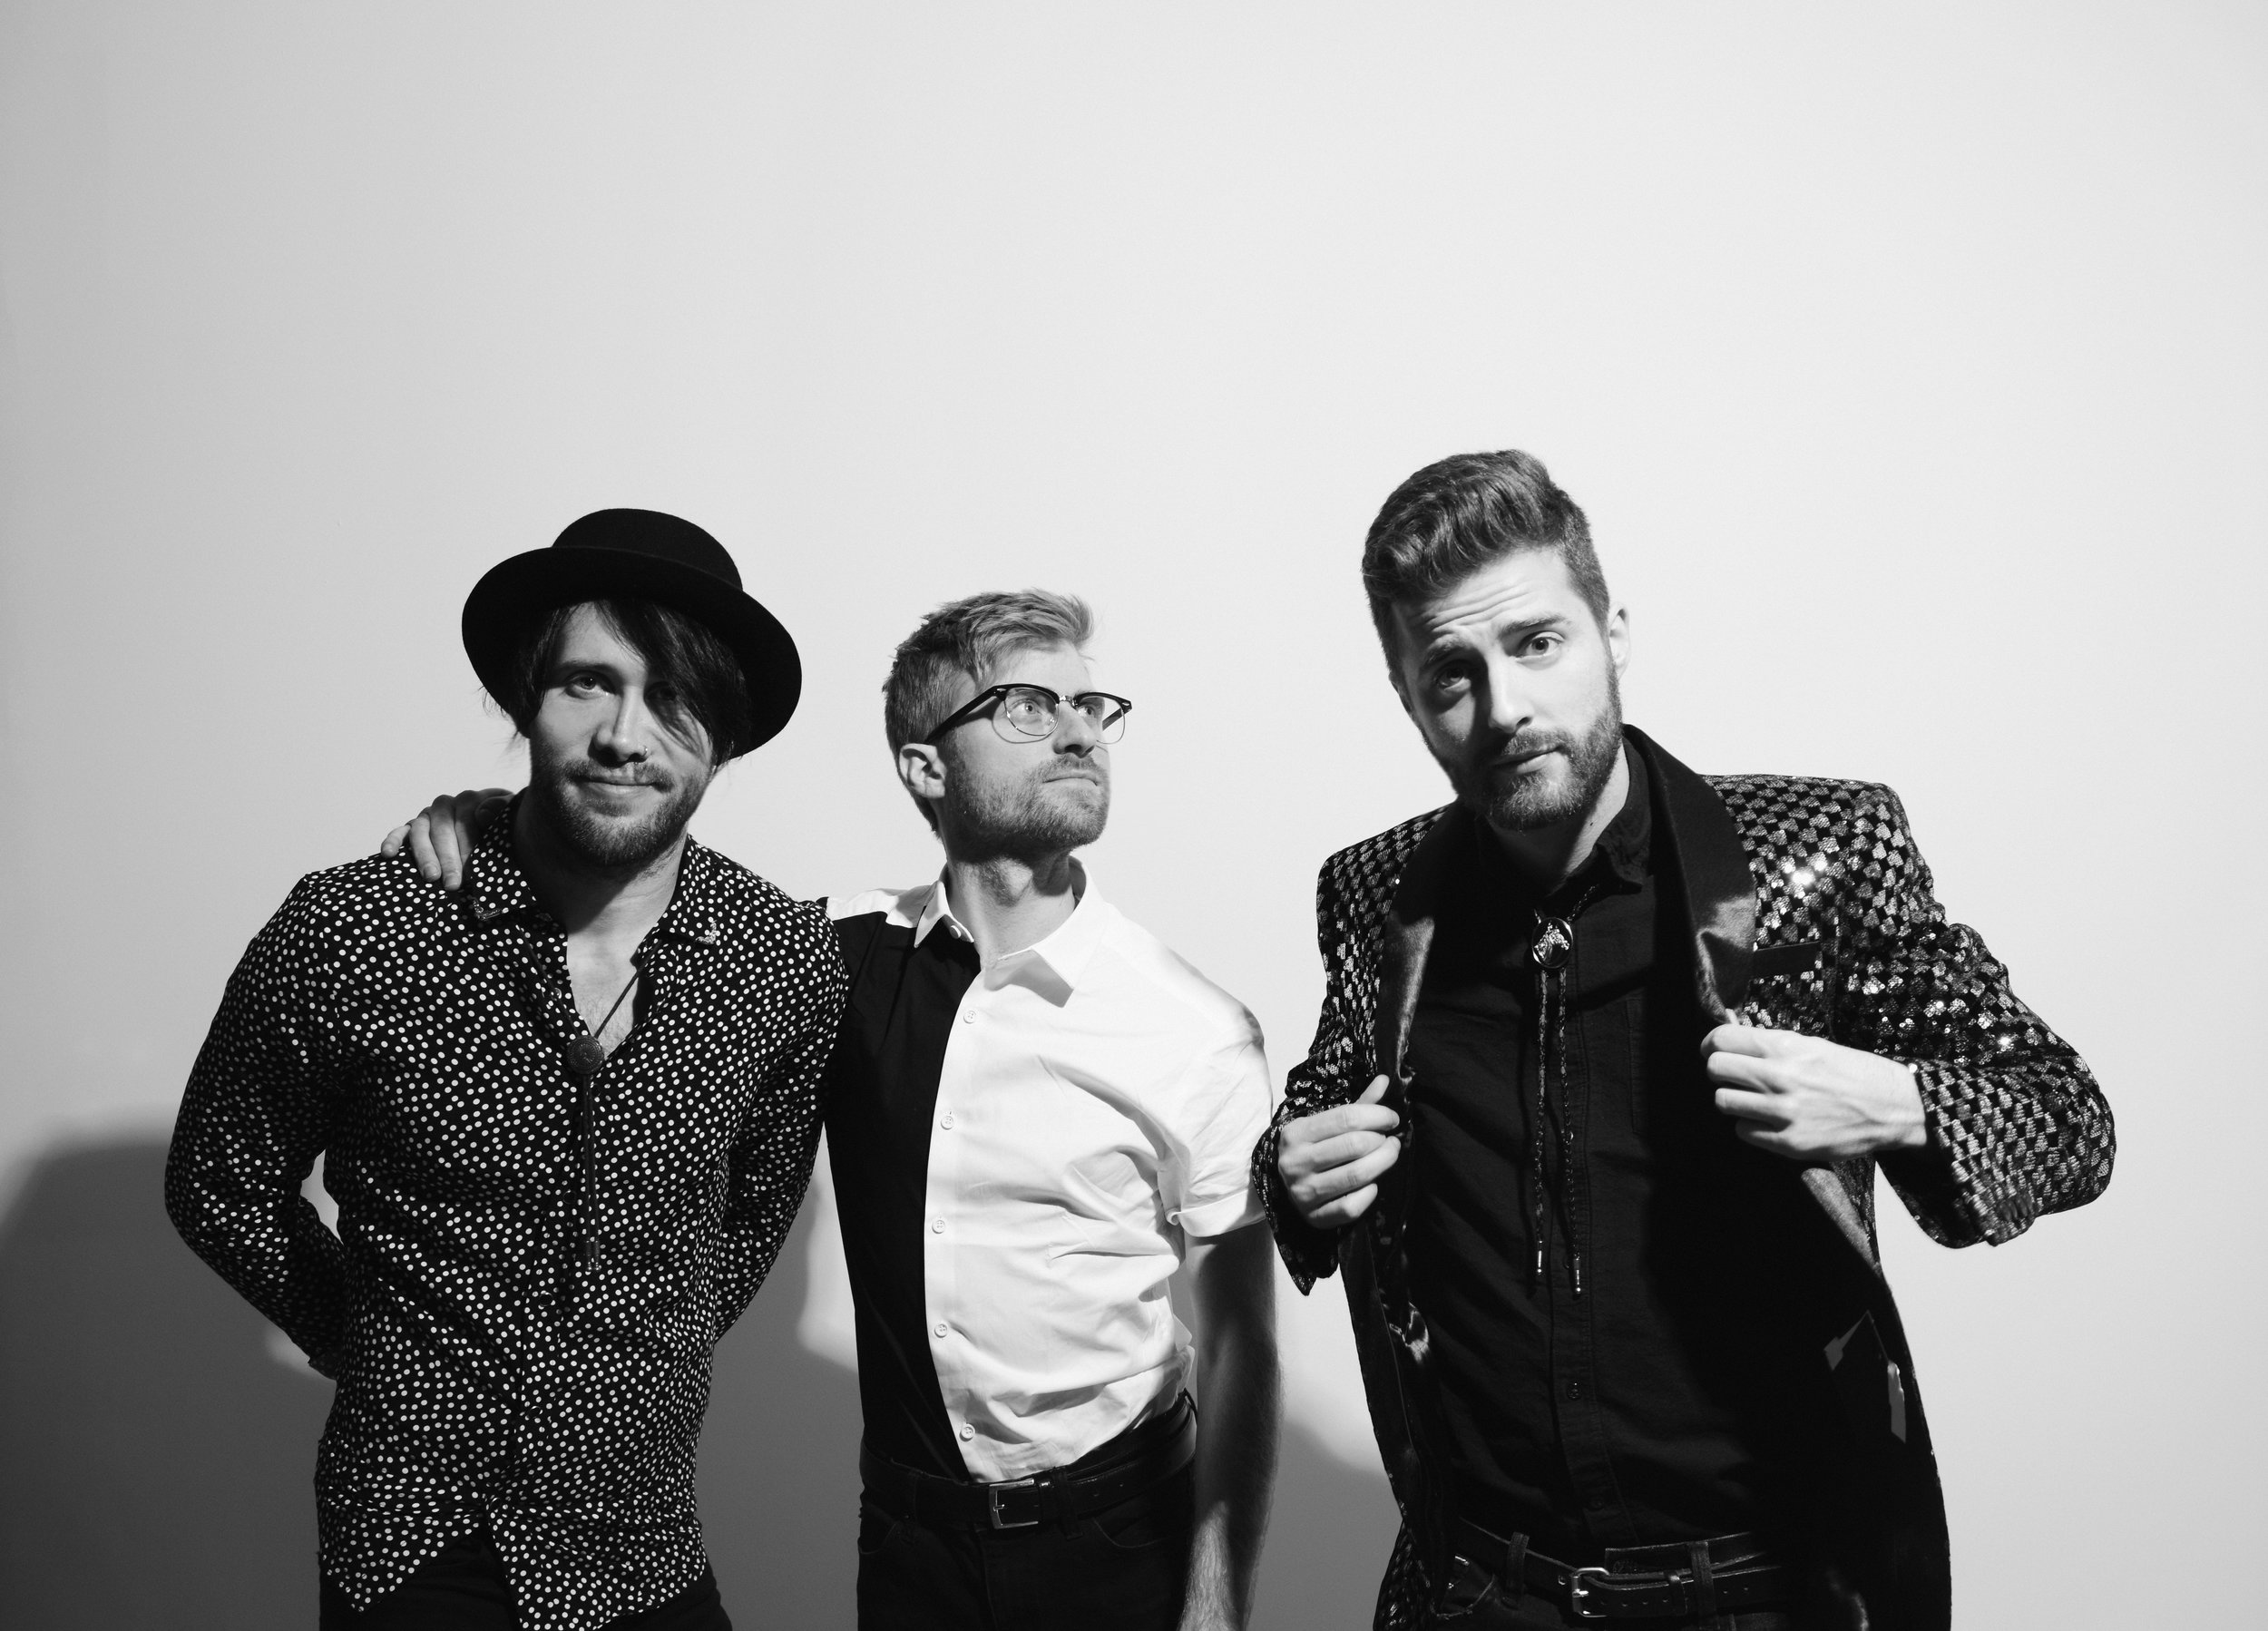 Jukebox the Ghost Press Photo 2 by Shervin Lainez (1).JPG